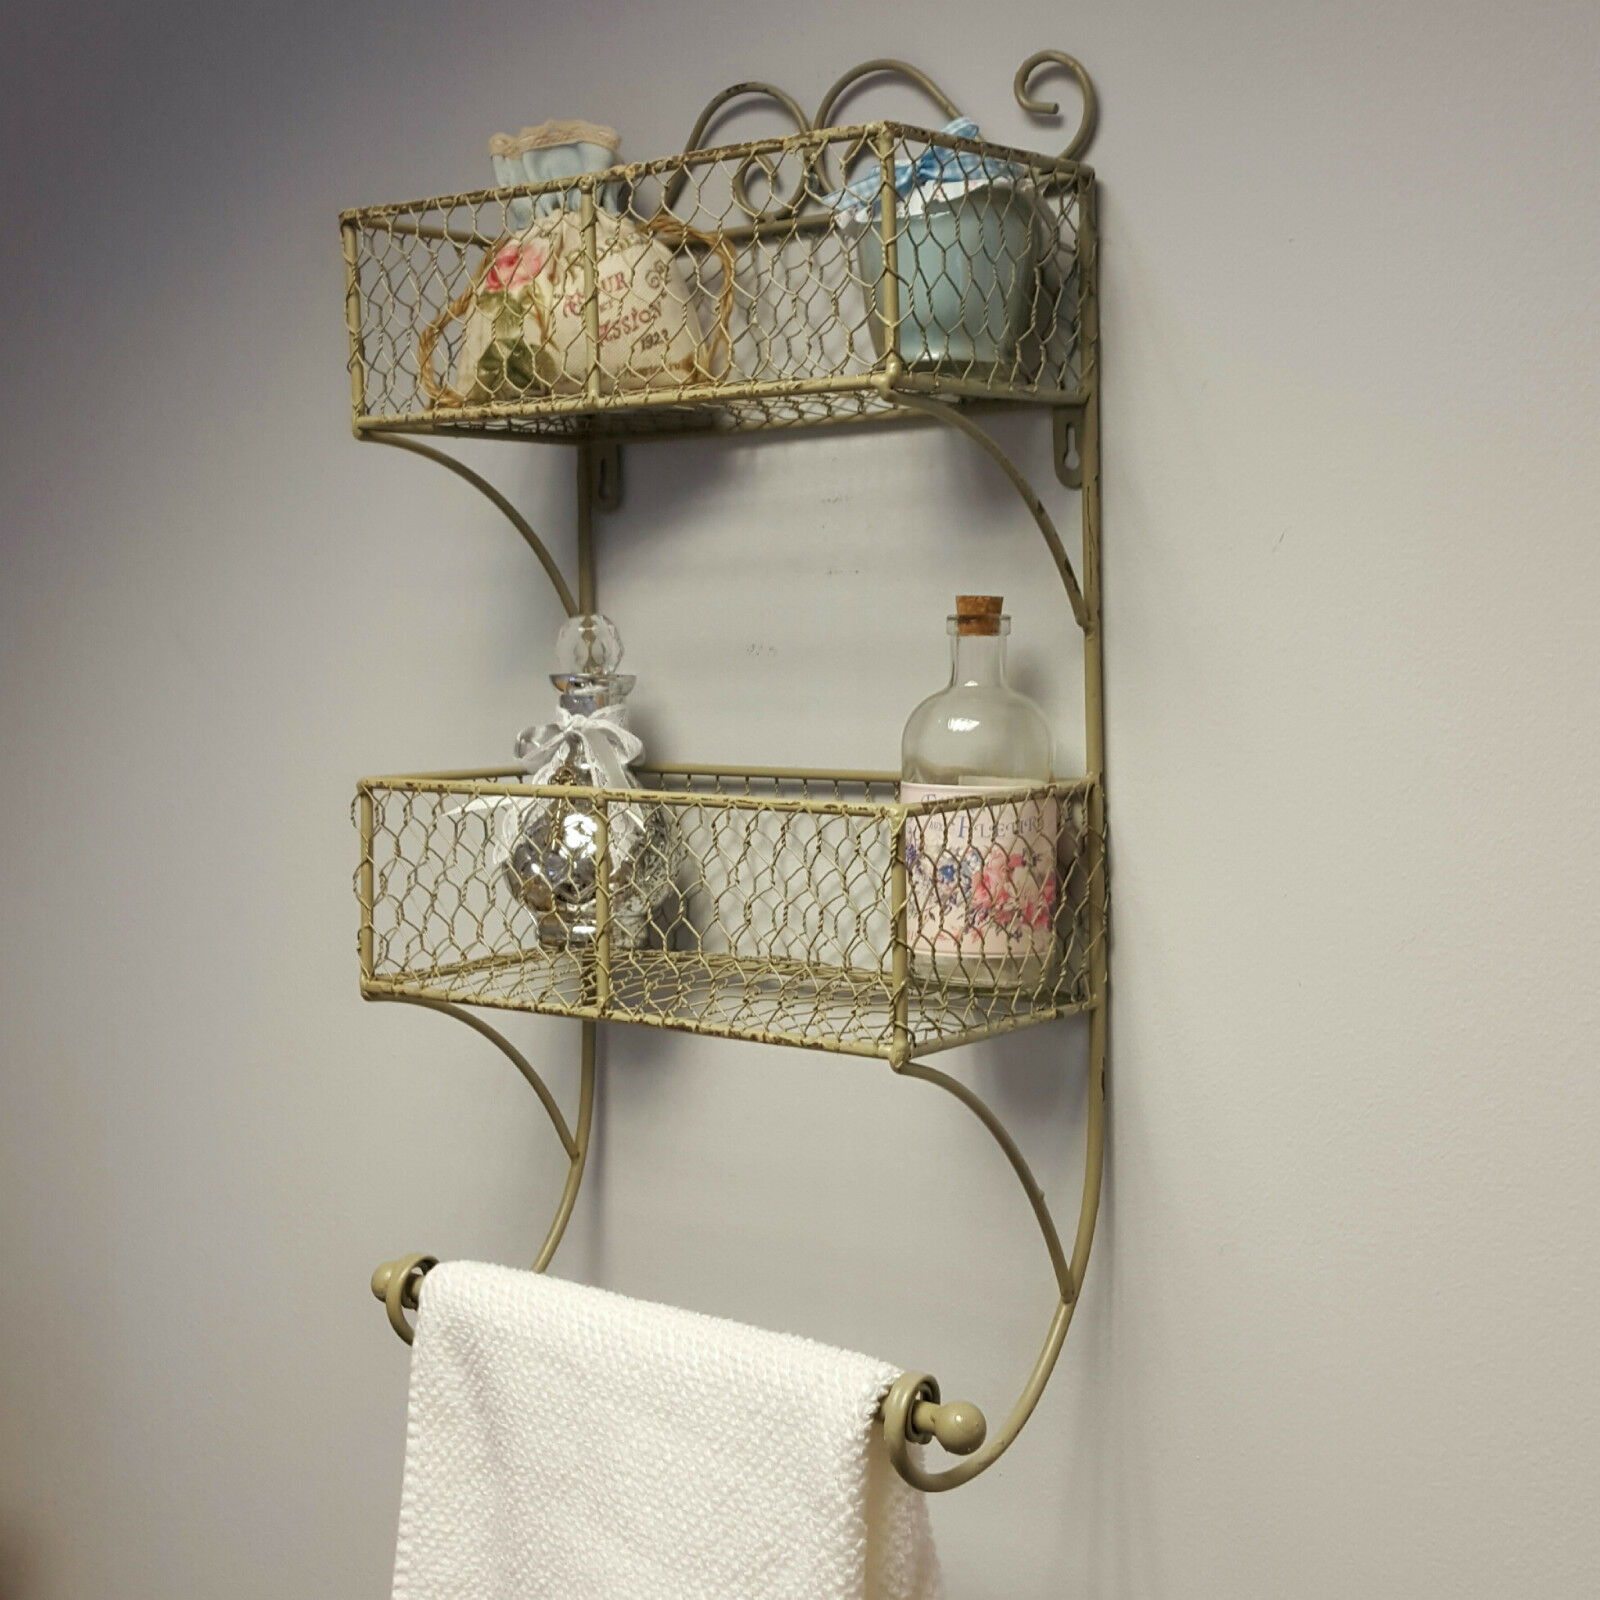 Shabby Chic Metal Wall Basket Shelf Storage Bathroom